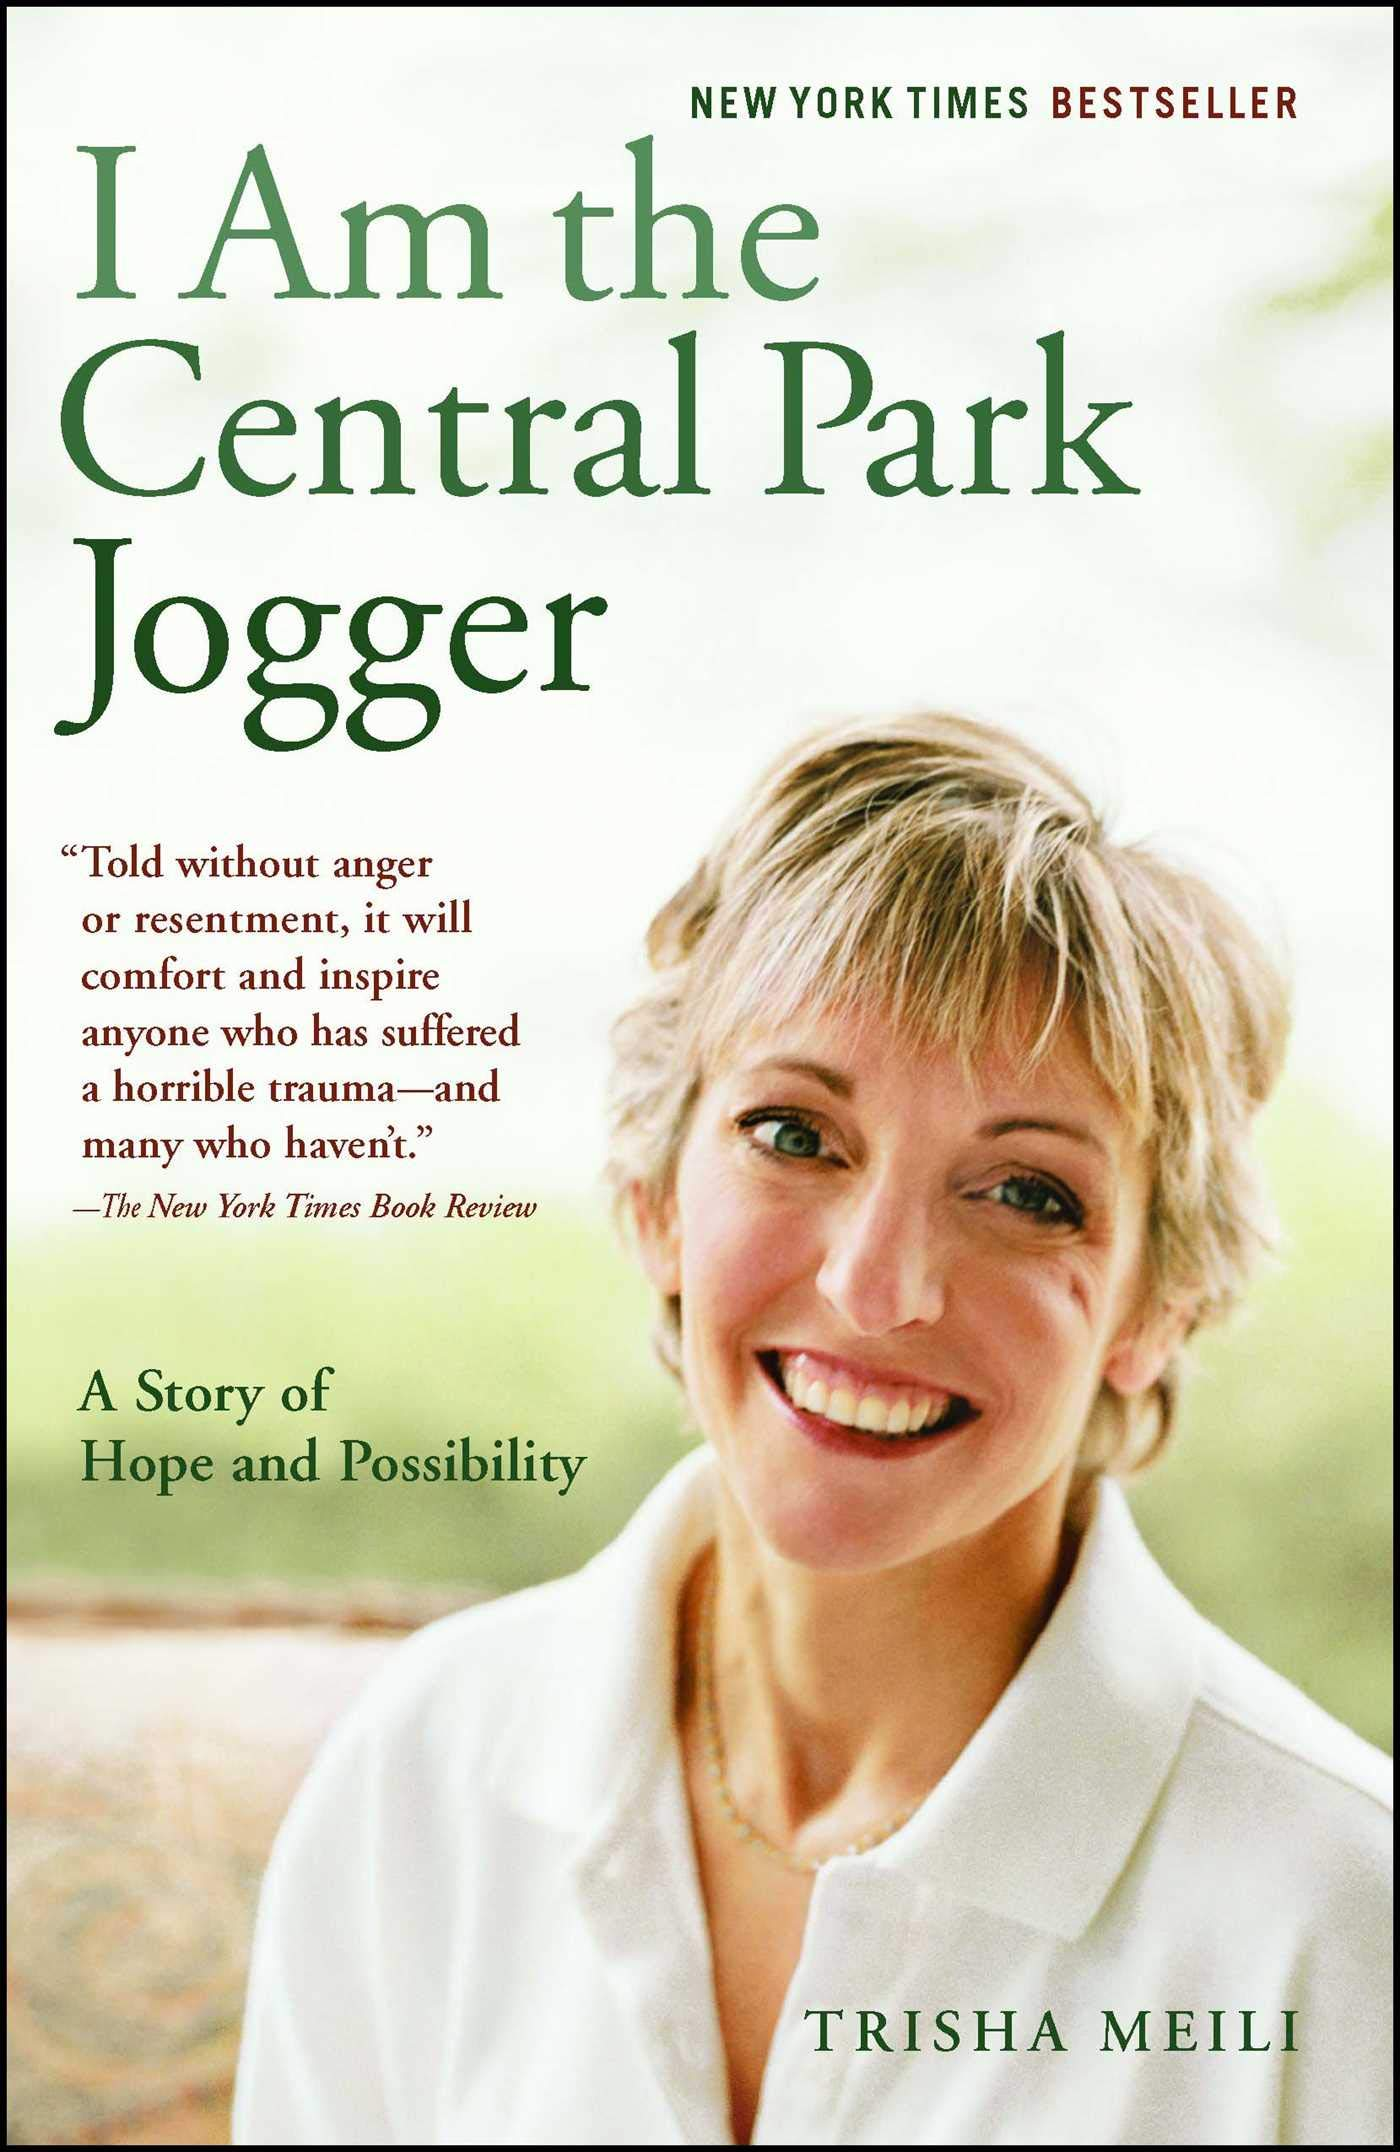 I Am The Central Park Jogger A Story Of Hope And Possibility Meili Trisha 9780743244381 Books